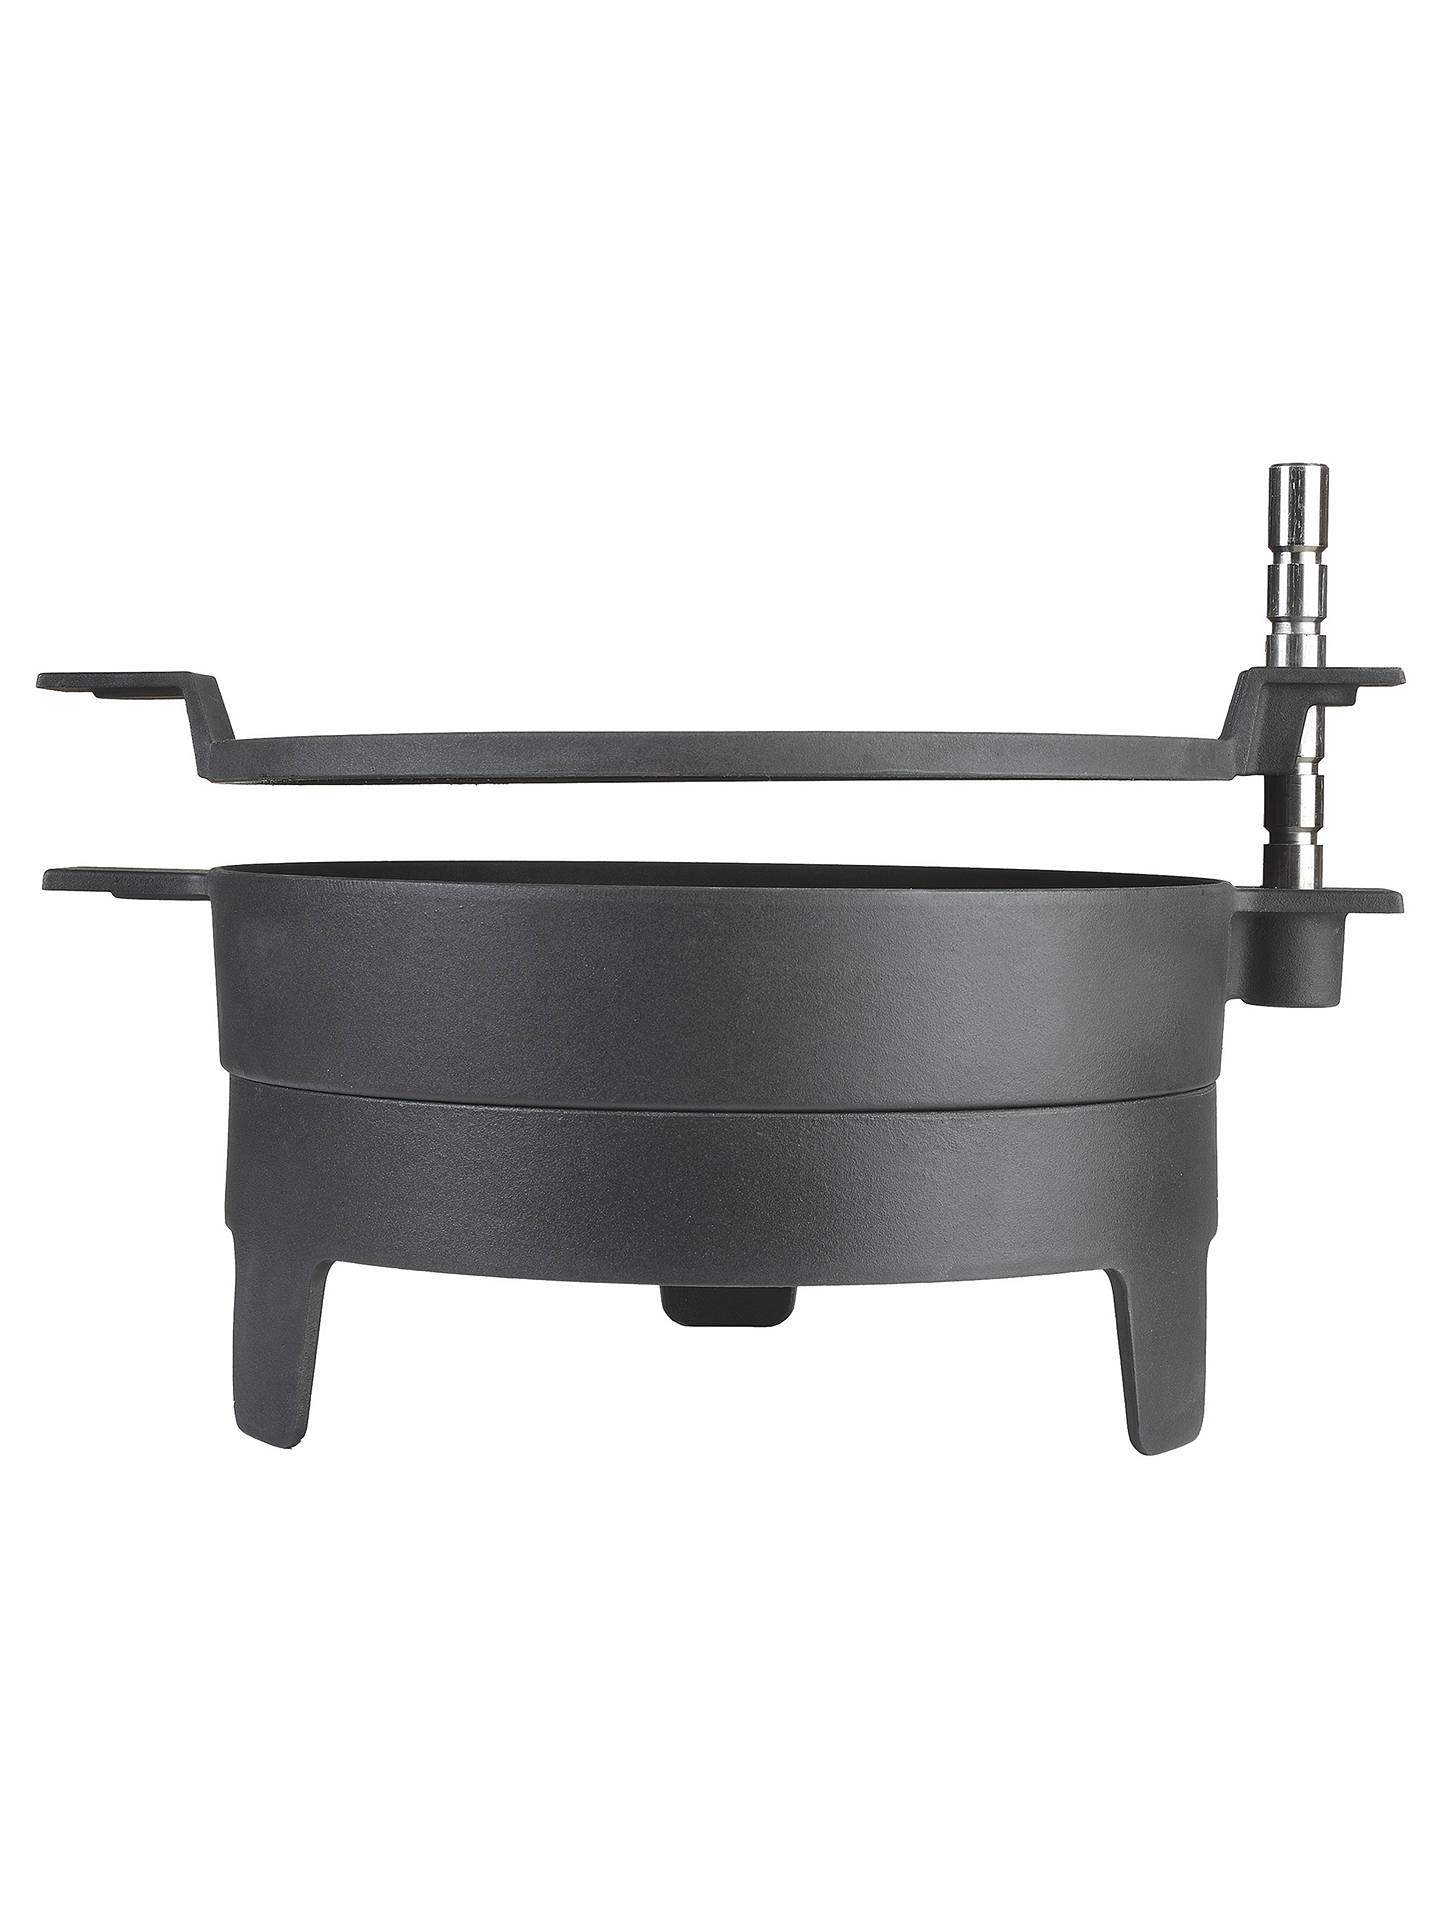 BuyMorsø Tabletop Charcoal Grill, Black Online at johnlewis.com